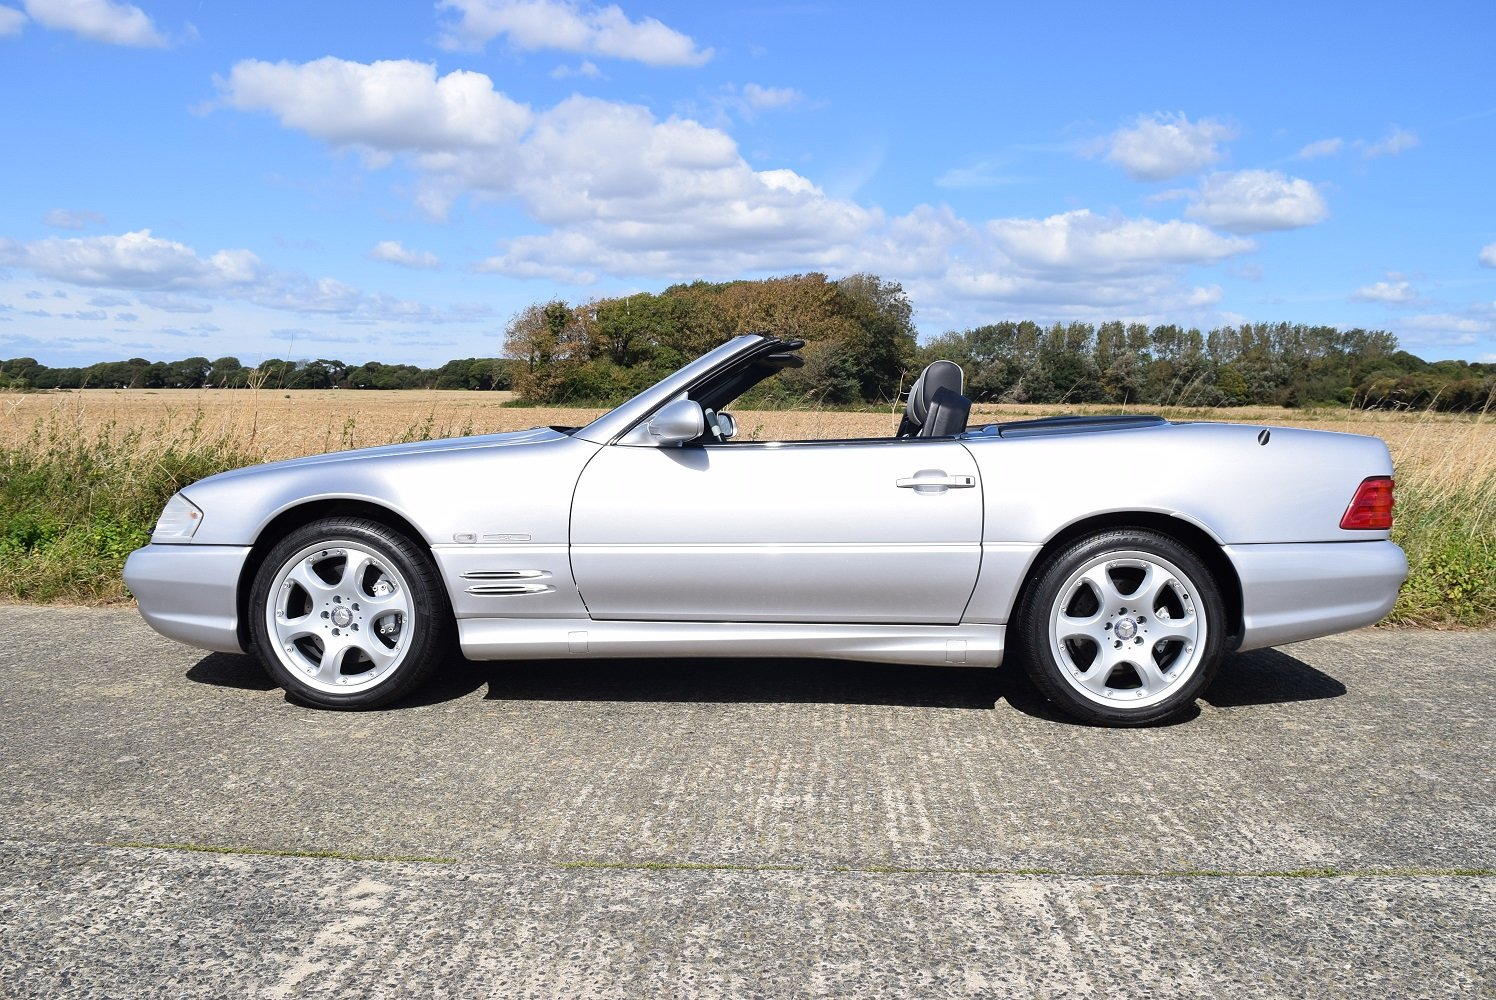 2001 Mercedes-Benz SL500 Silver Arrow For Sale (picture 2 of 6)